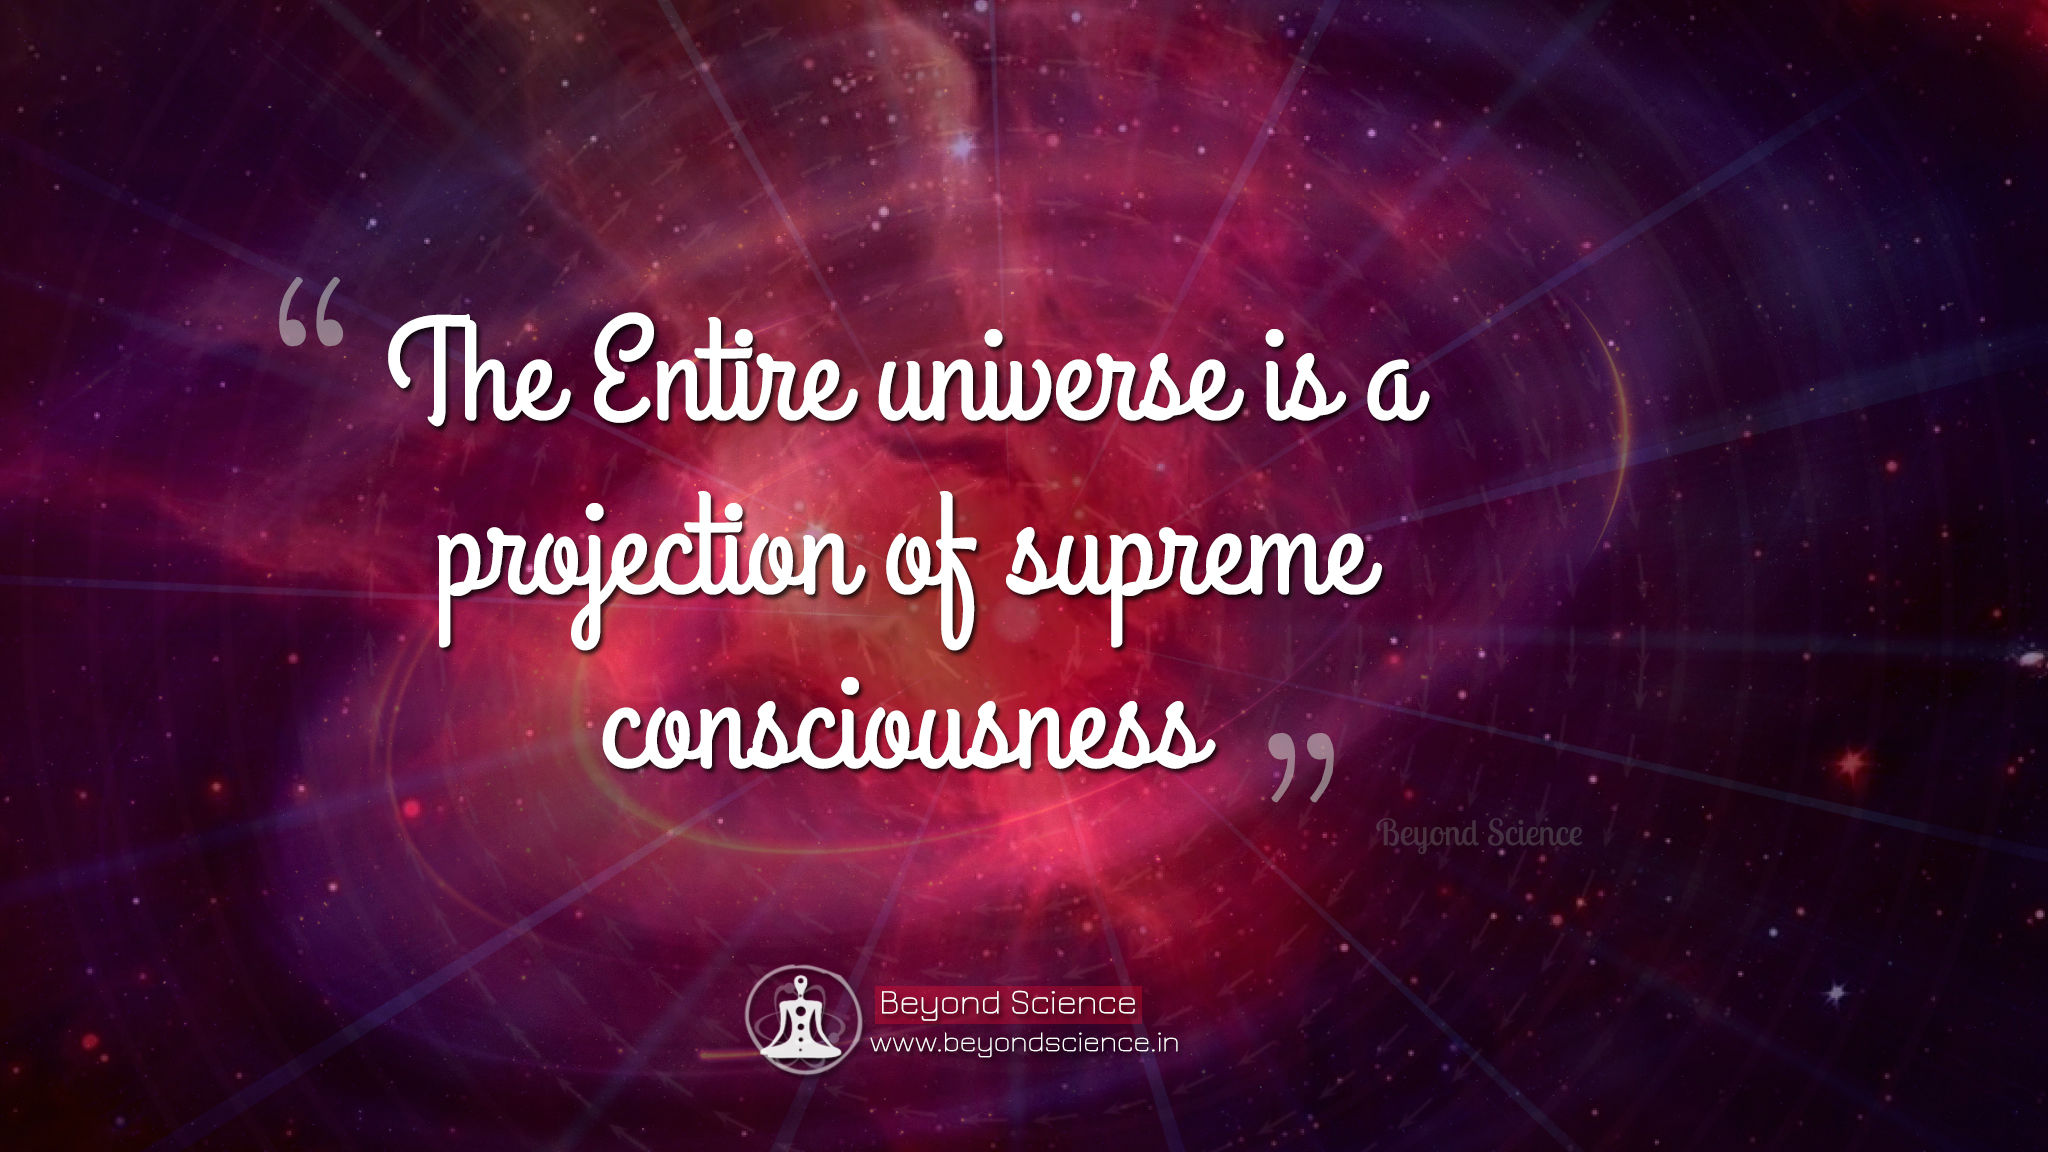 The Entire universe is a projection of supreme consciousness